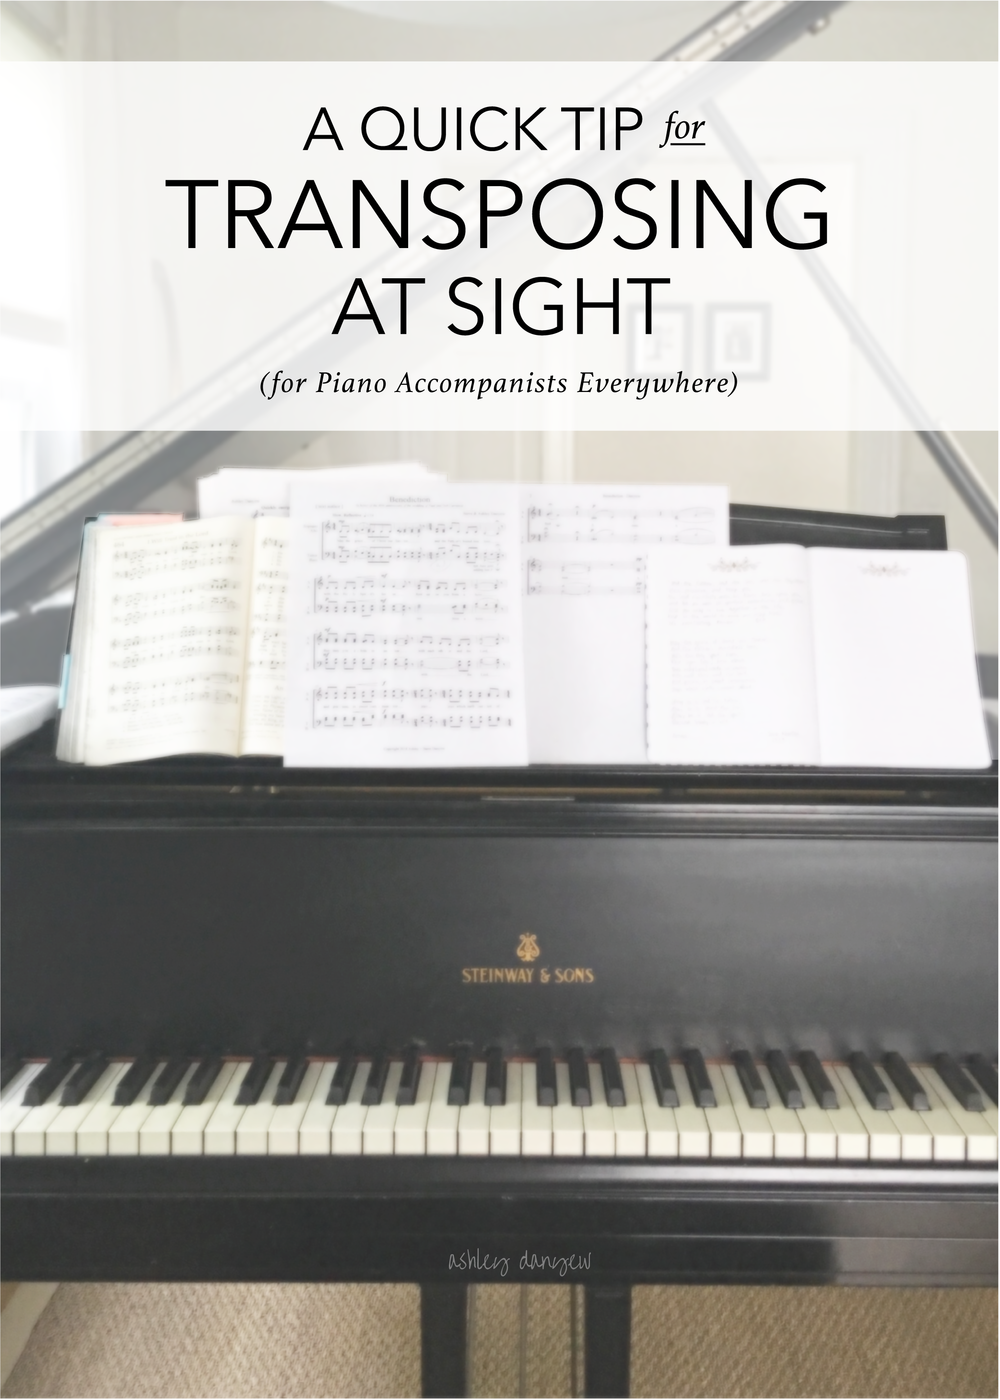 A Quick Tip for Transposing at Sight (for Piano Accompanists Everywhere)-37.png